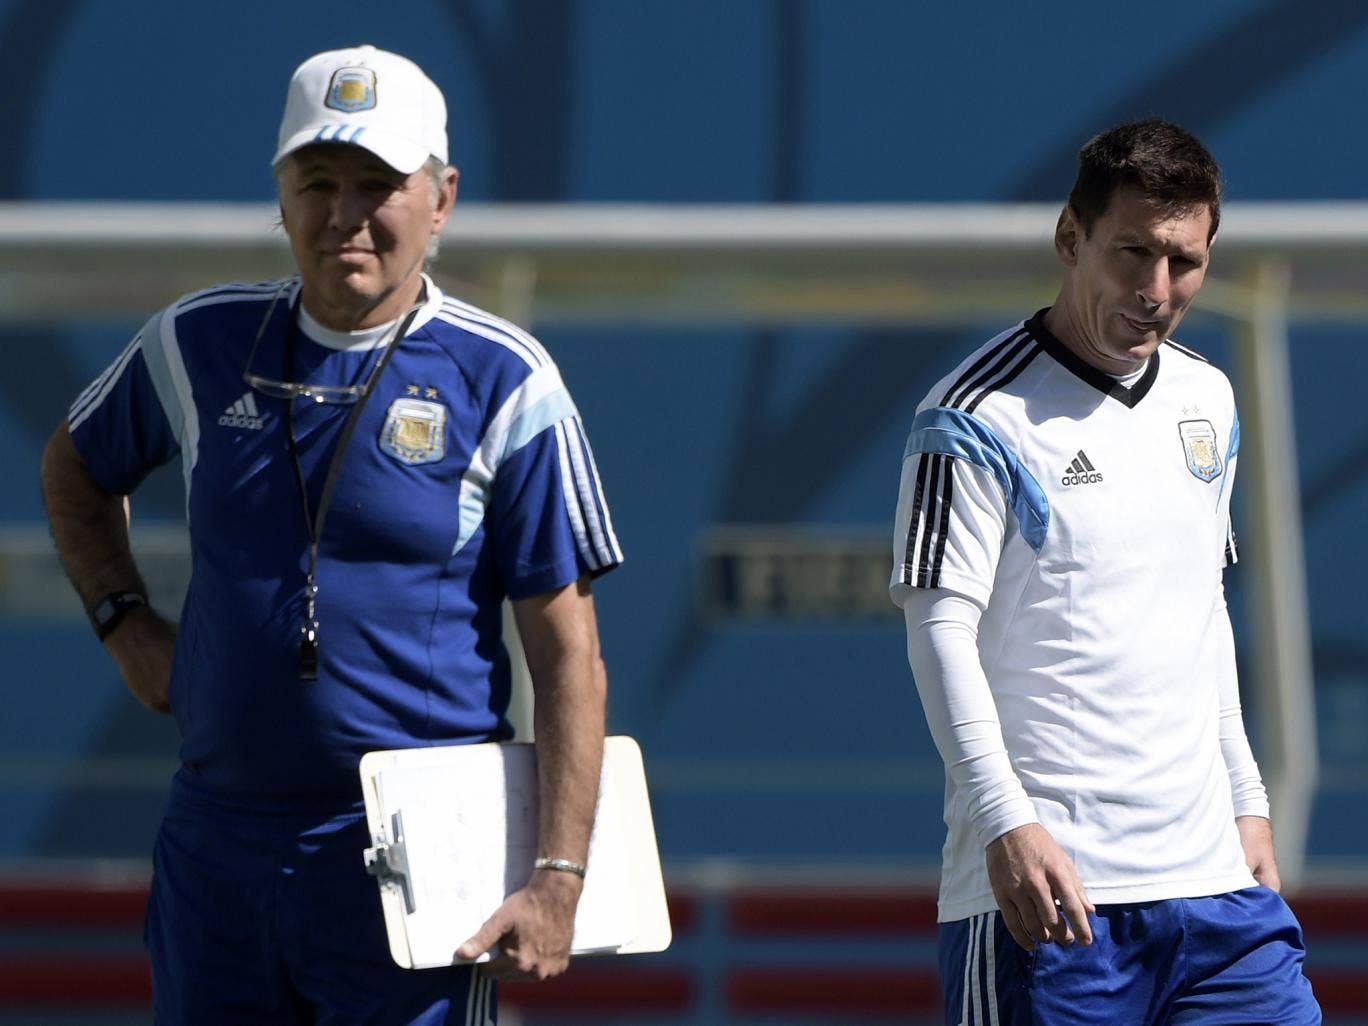 Argentina's forward Lionel Messi (R) is watched by coach Alejandro Sabella